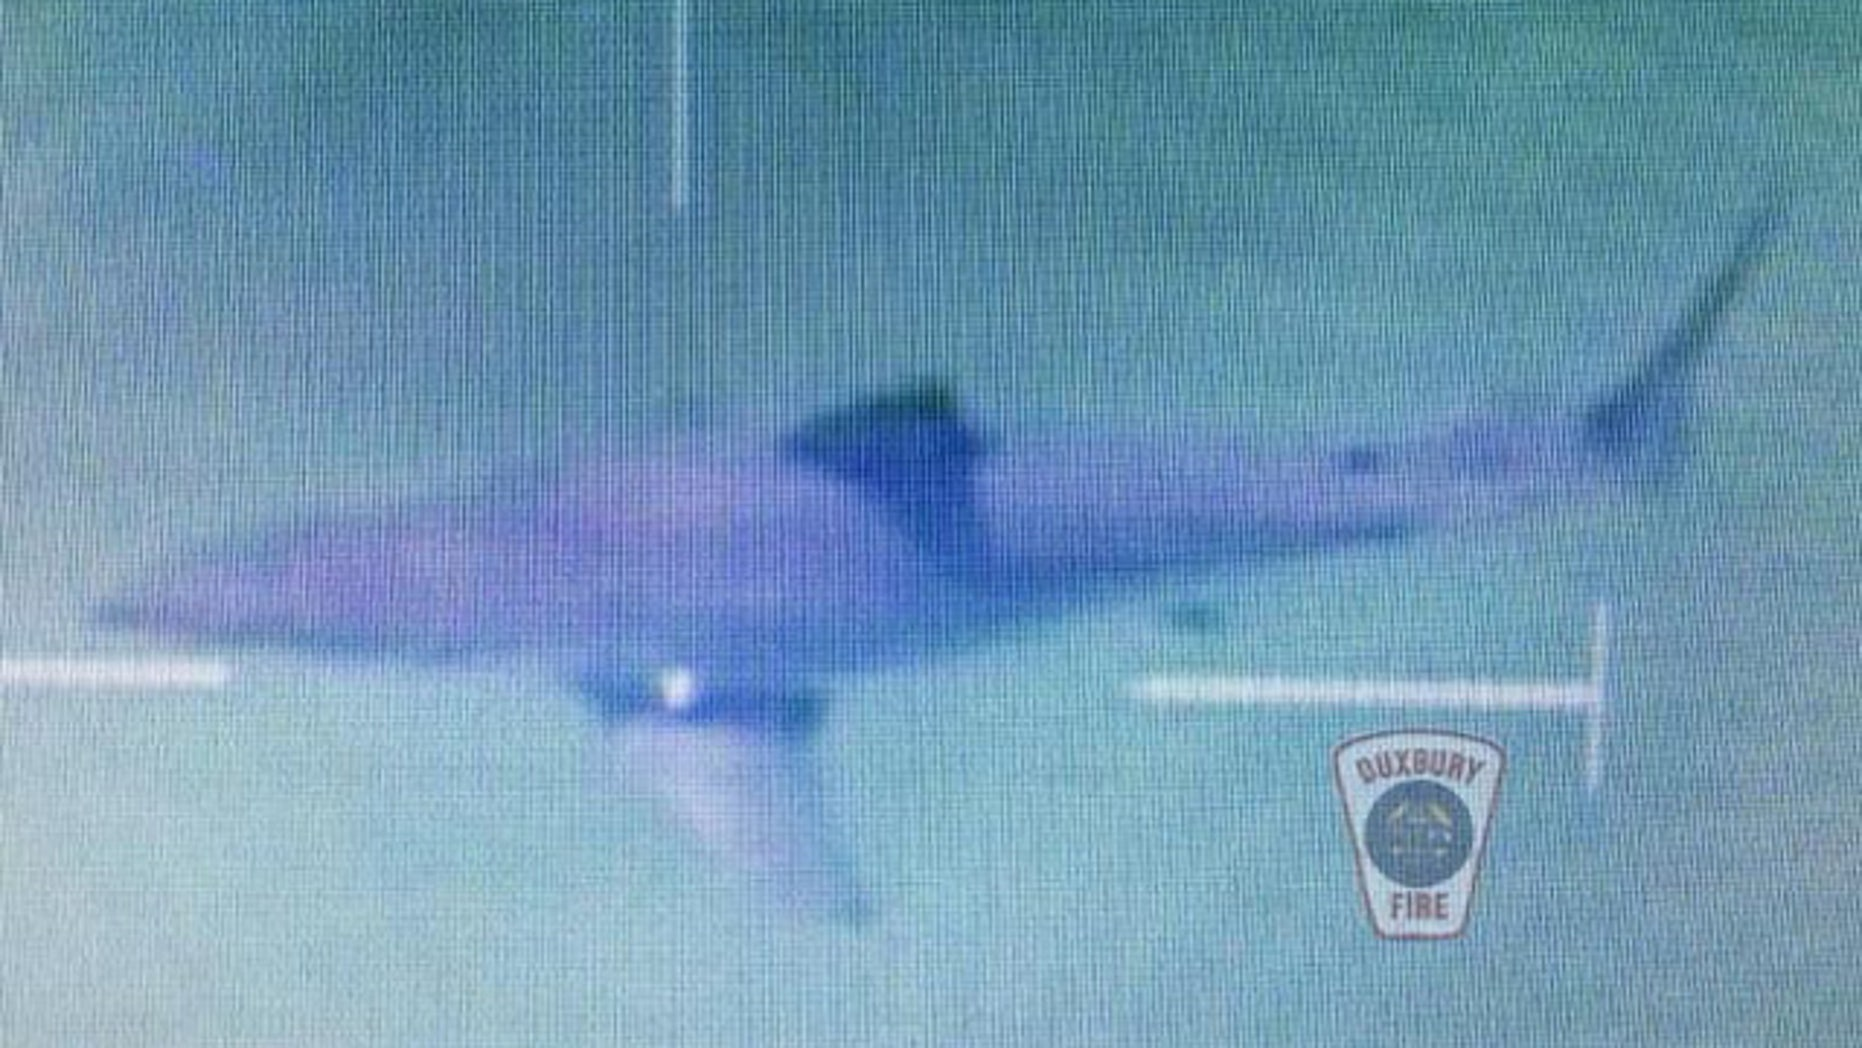 August 25, 2014: This photo shows a great white shark that was spotted by a Massachusetts State Police helicopter near a beach at Duxbury, Mass. The sighting prompted the beach to be closed for approximately two hours. (MyFoxBoston.com/Duxbury Fire Department)